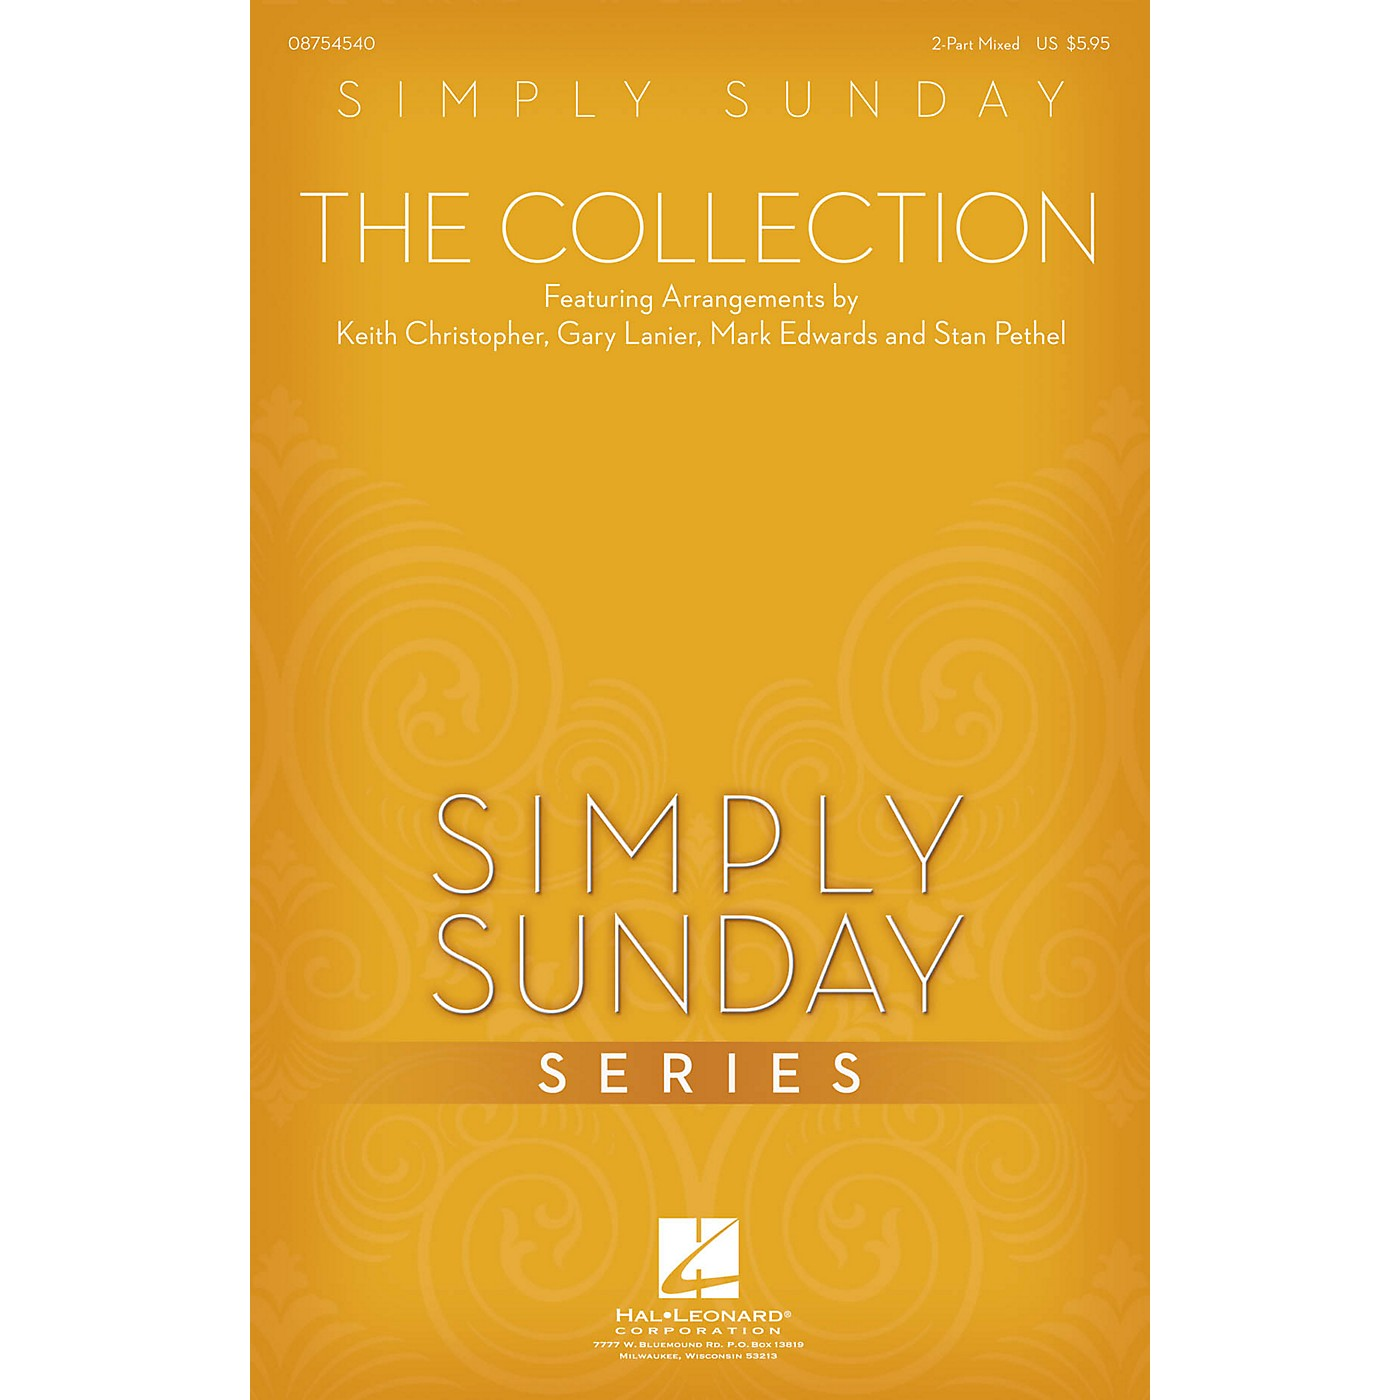 Hal Leonard Simply Sunday - The Collection 2 Part Mixed arranged by Keith Christopher thumbnail